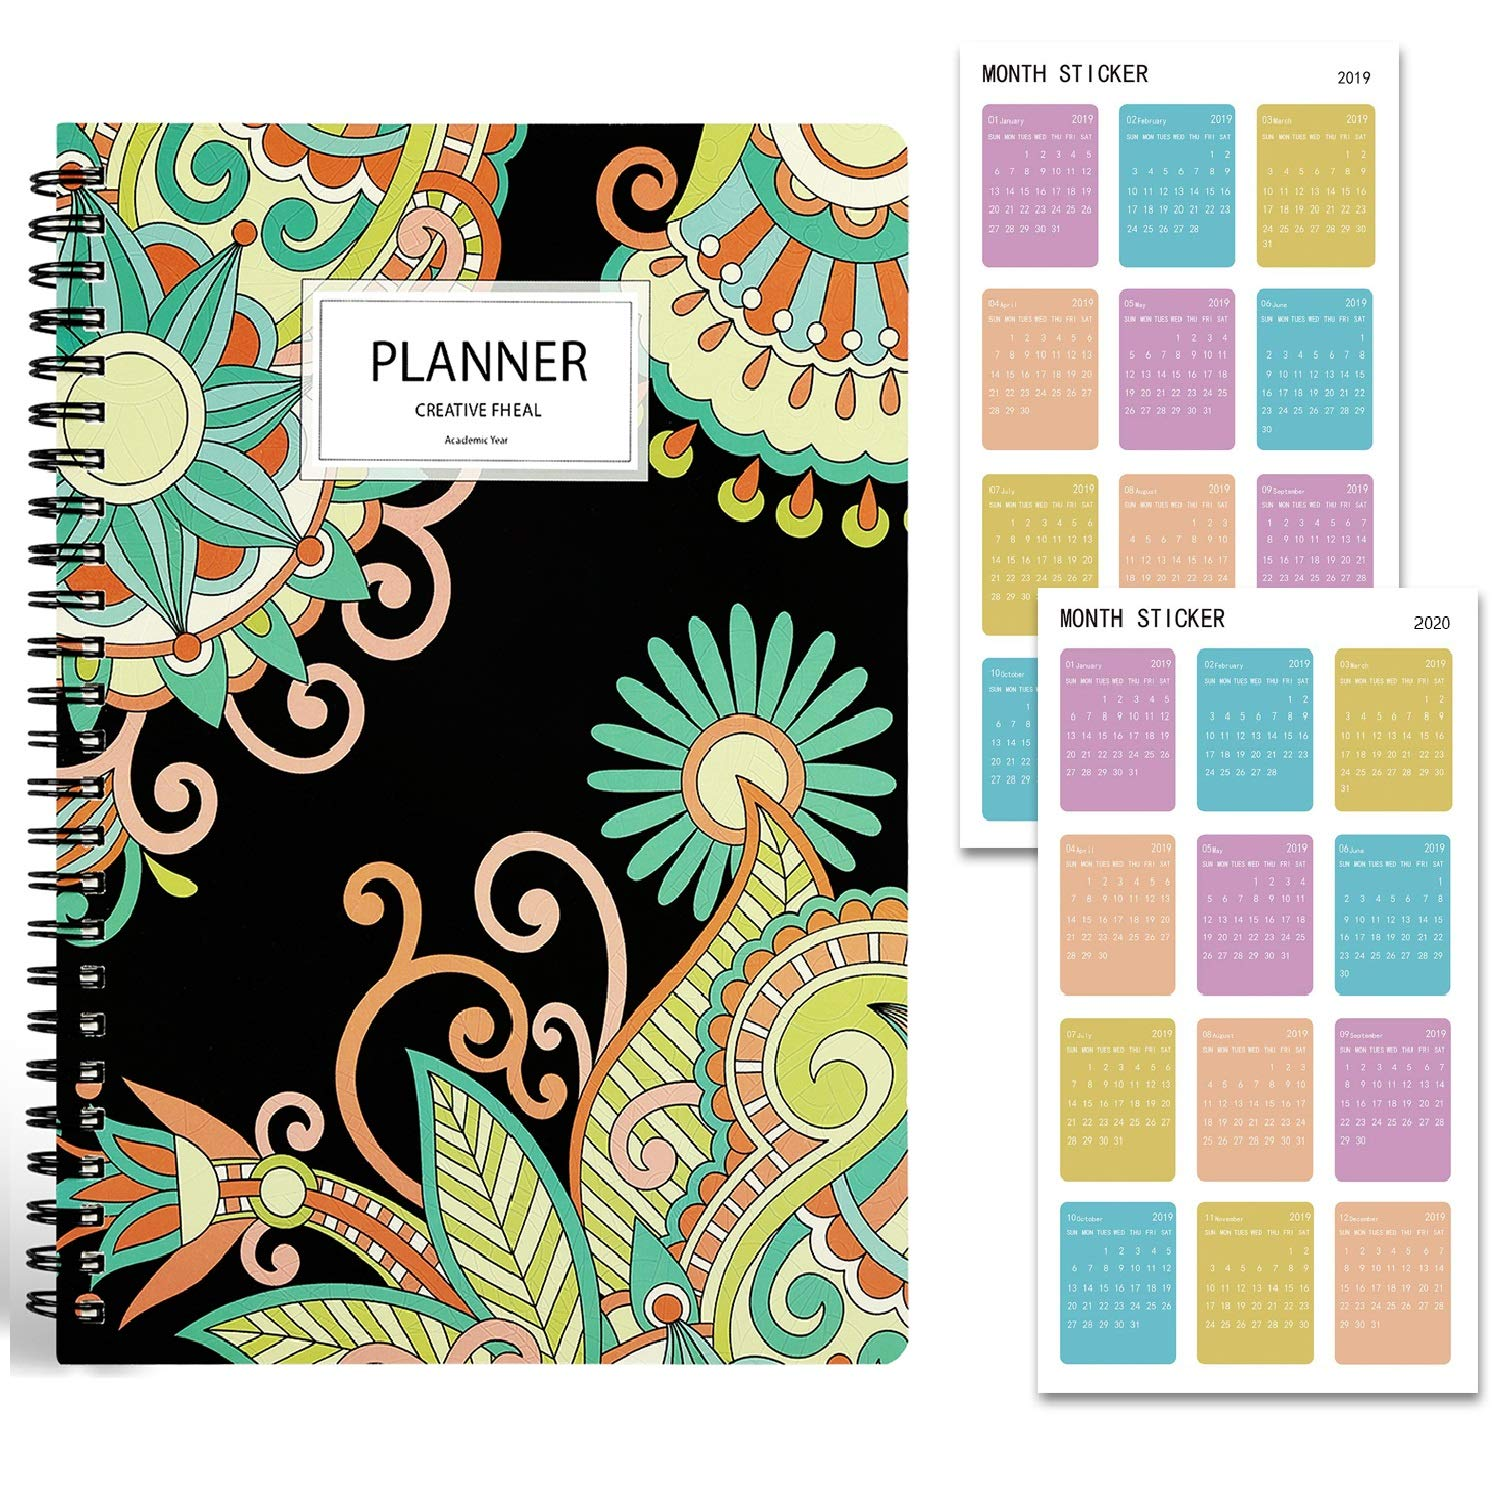 Things To Do Classes Calendar February 24 2019 Amazon.: Animoeco 2019 Planner with Stickers   Academic Daily